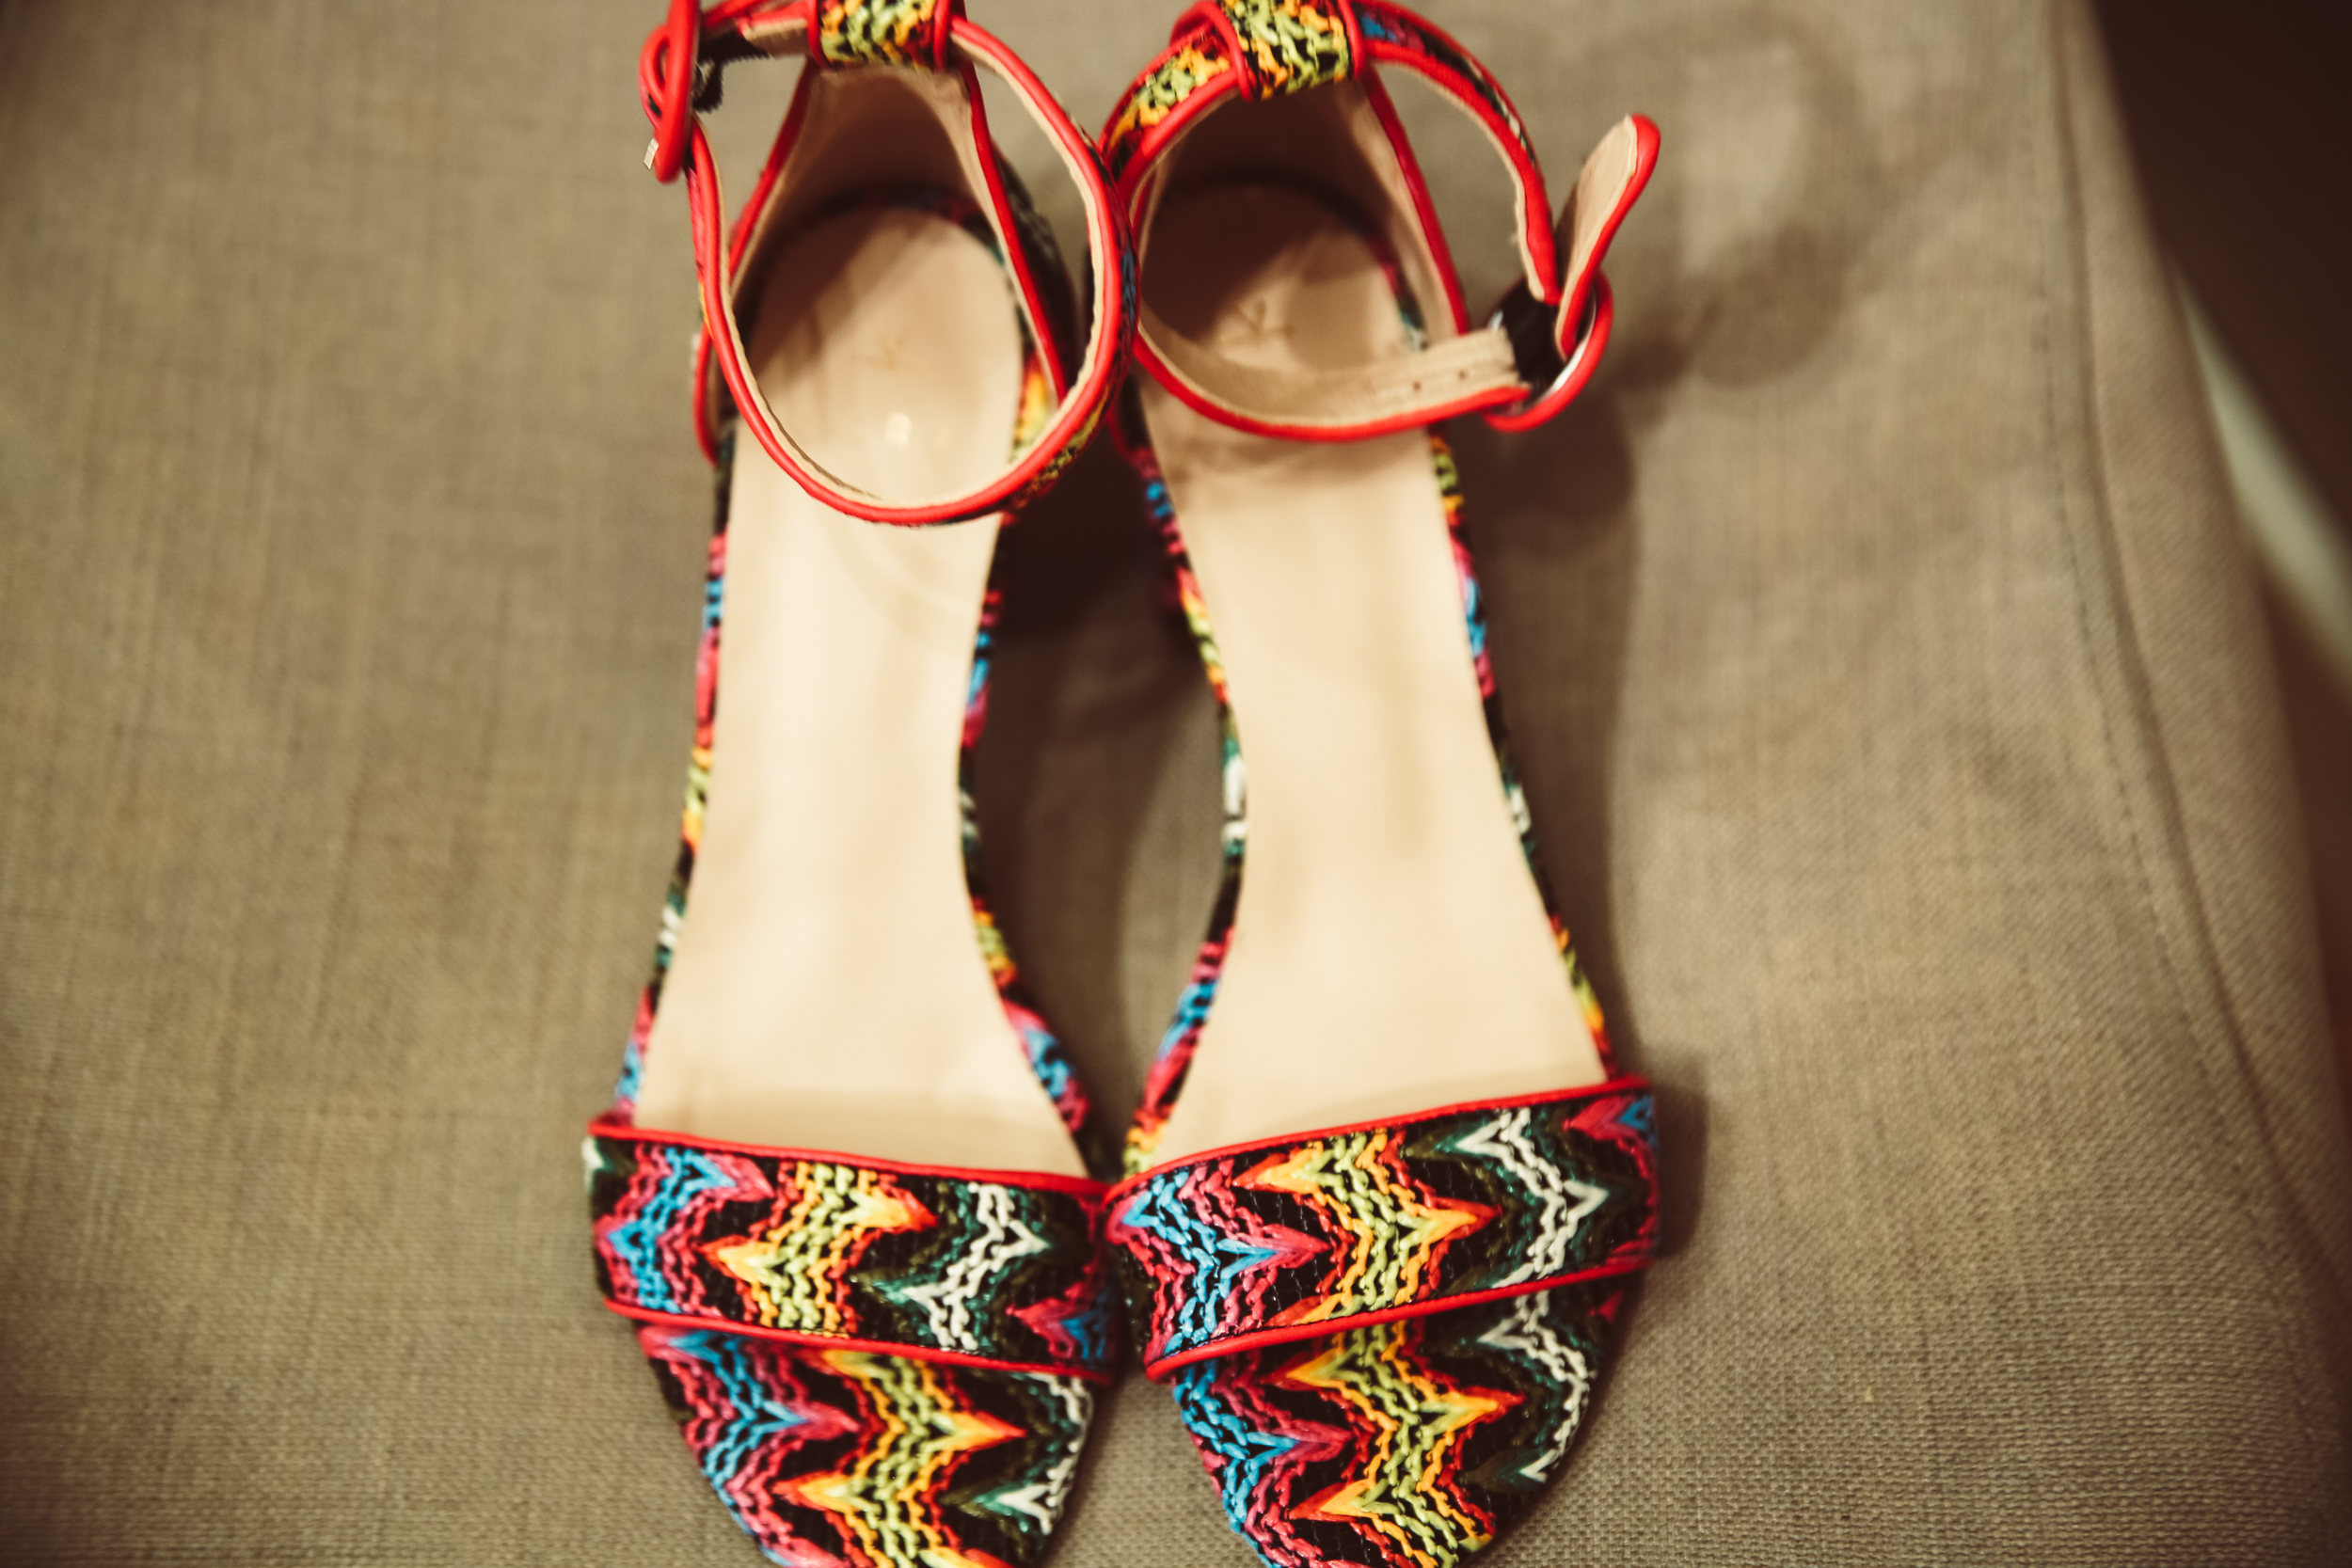 ALOHA  coloured raffia buckle up block sandal, £120 (these were the pair that made me swoon! The team kindly gifted me a pair to take home with me, and the shoe comments have not stopped rolling in since. Yee haw!)